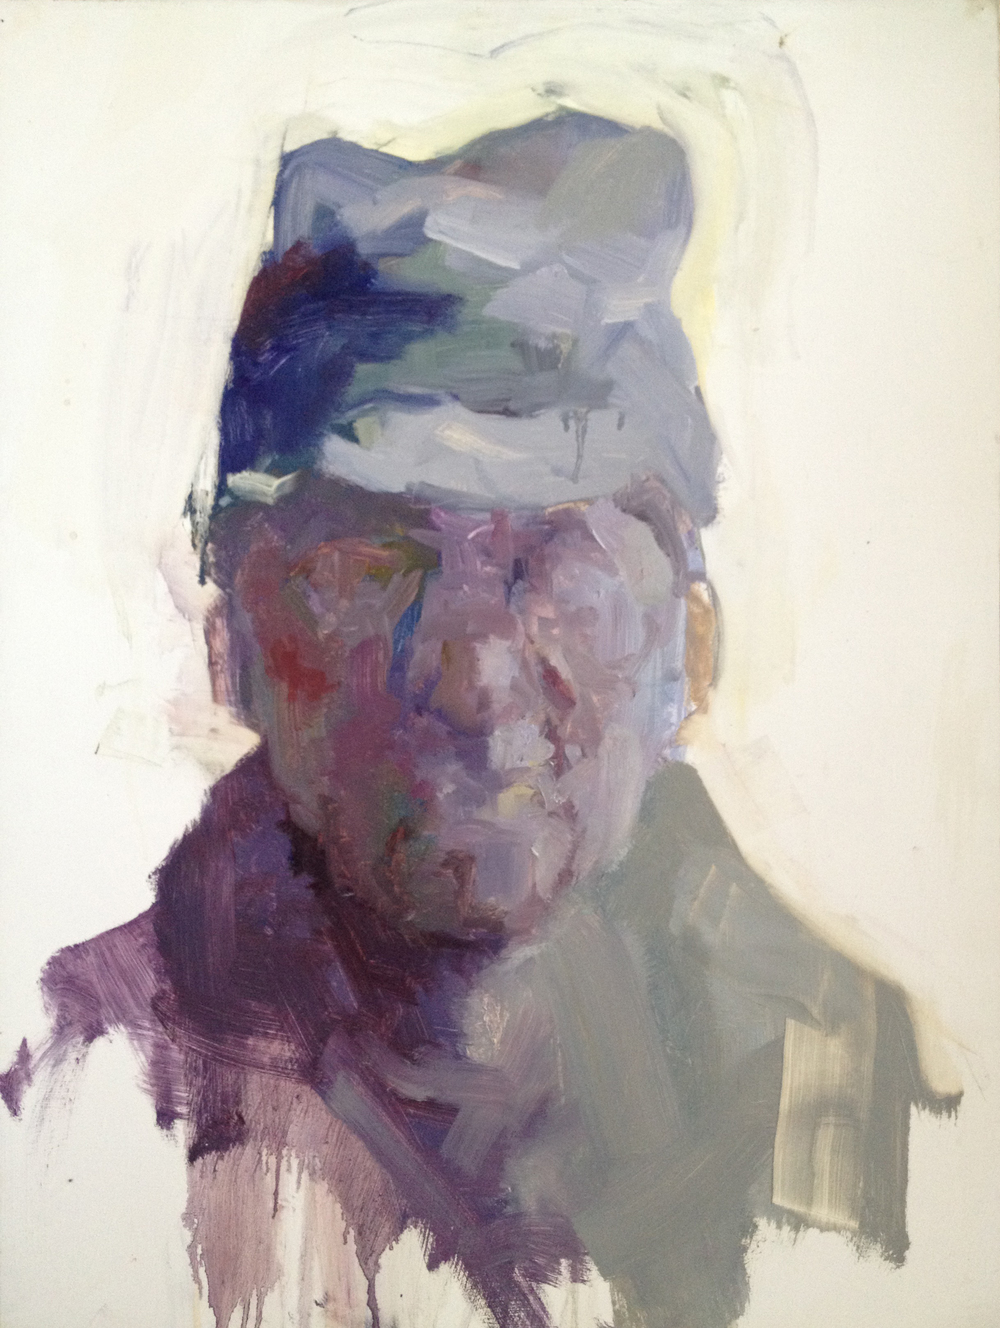 Man with Hat - Oil on Paper